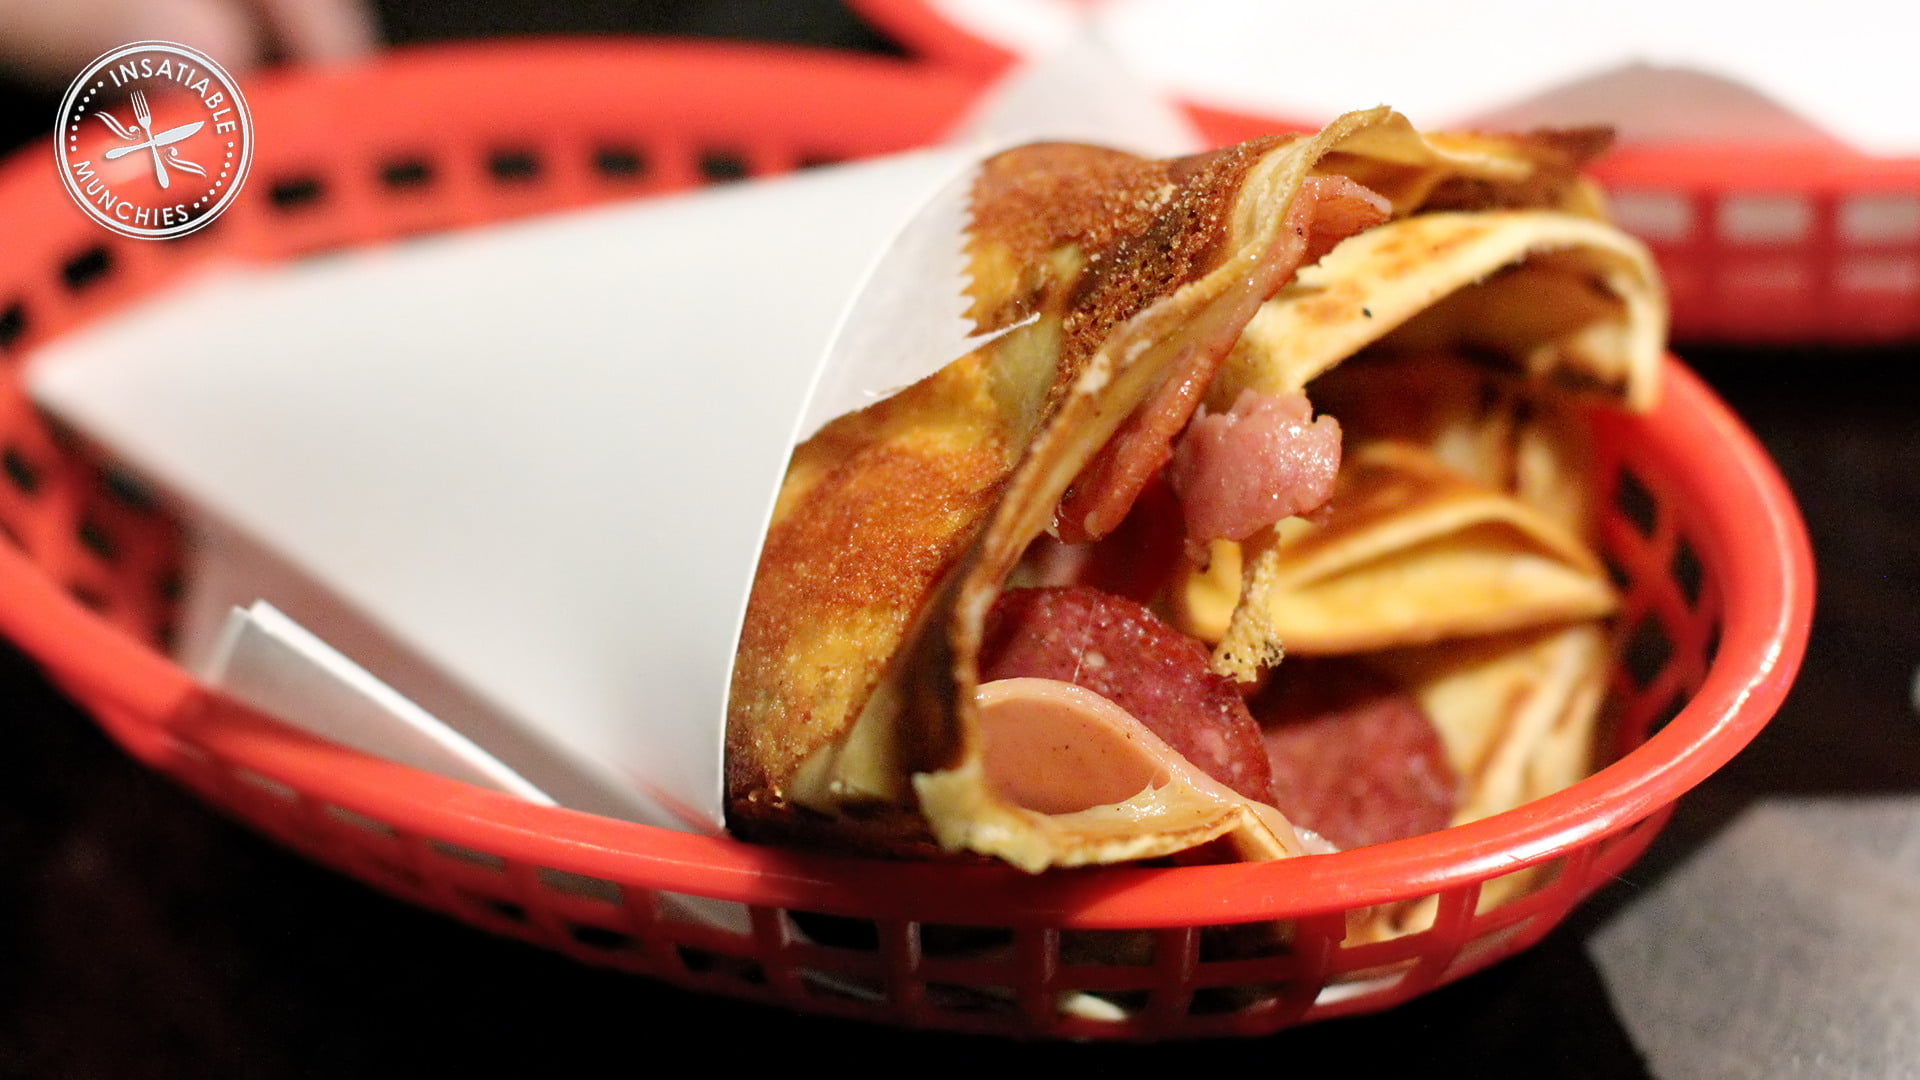 Meatlover's crepe from doughboy diner, with salami, ham, cabana sausage and lots of cheese.